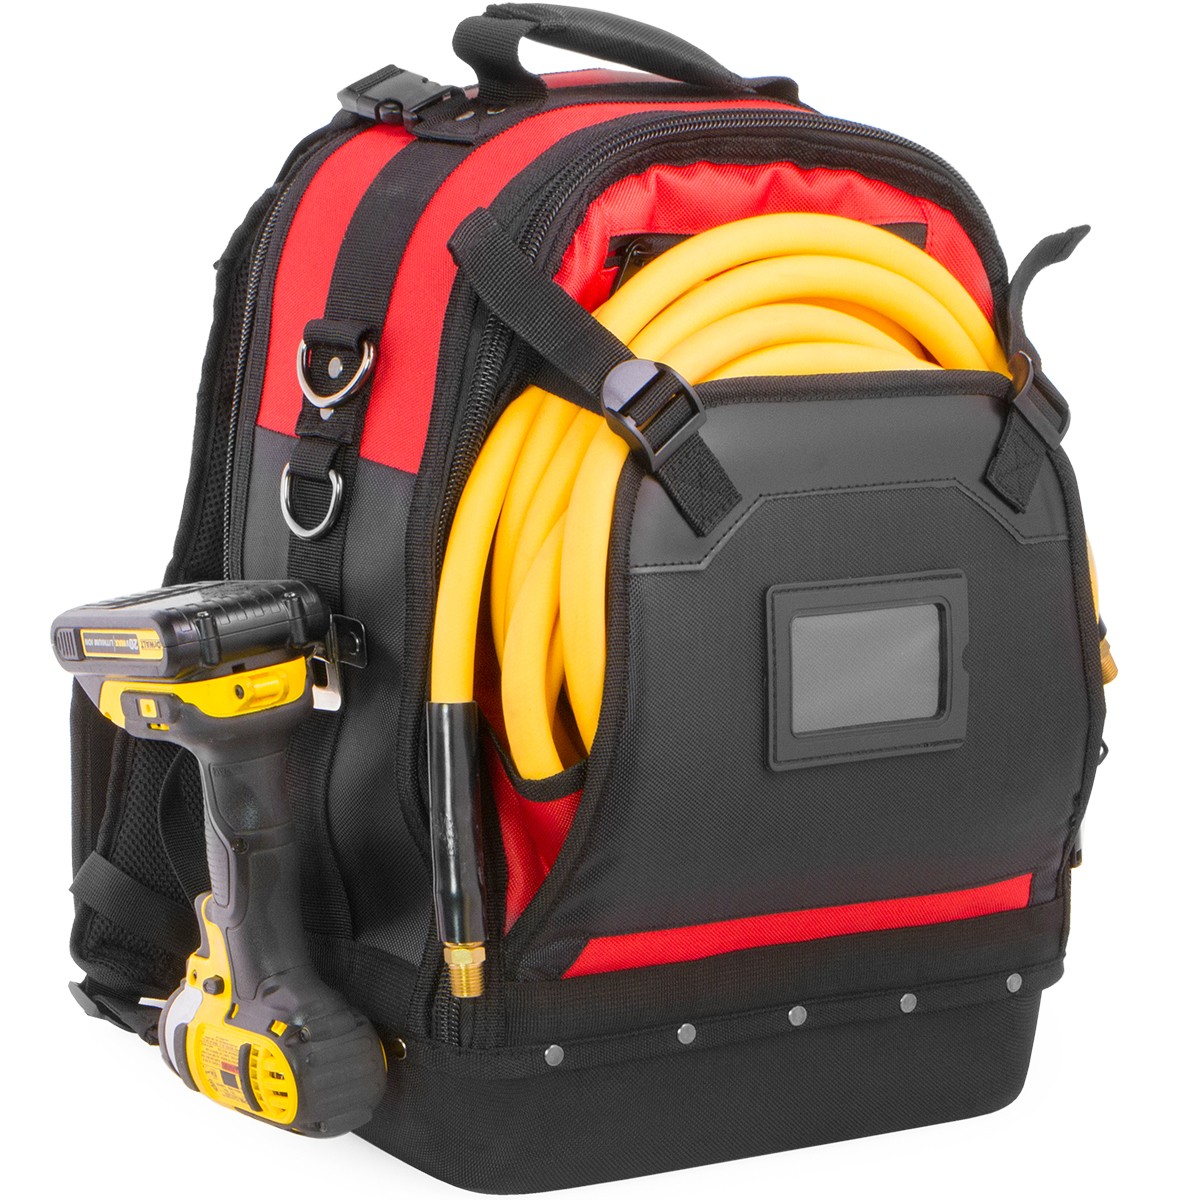 Xtreme Tough Jobsite Backpack Tool Storage Bag Heavy Duty Construction Book  Bag